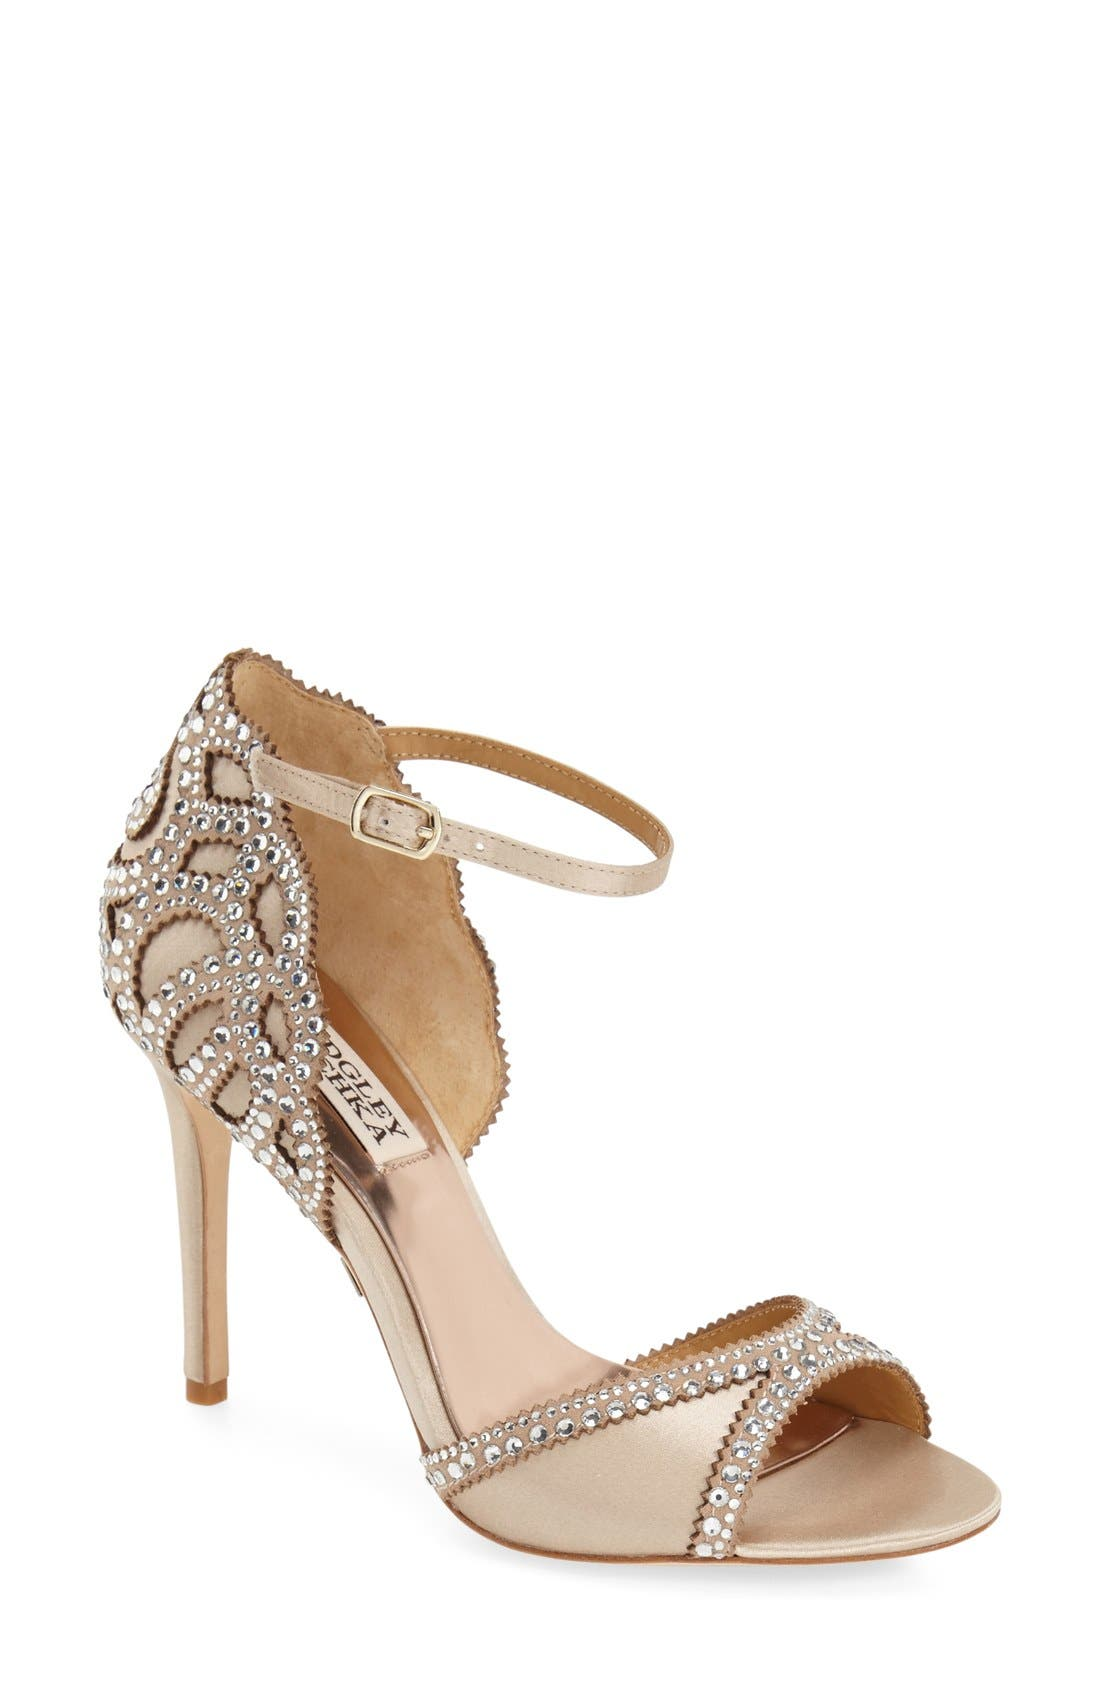 BADGLEY MISCHKA 'Roxy' Sandal